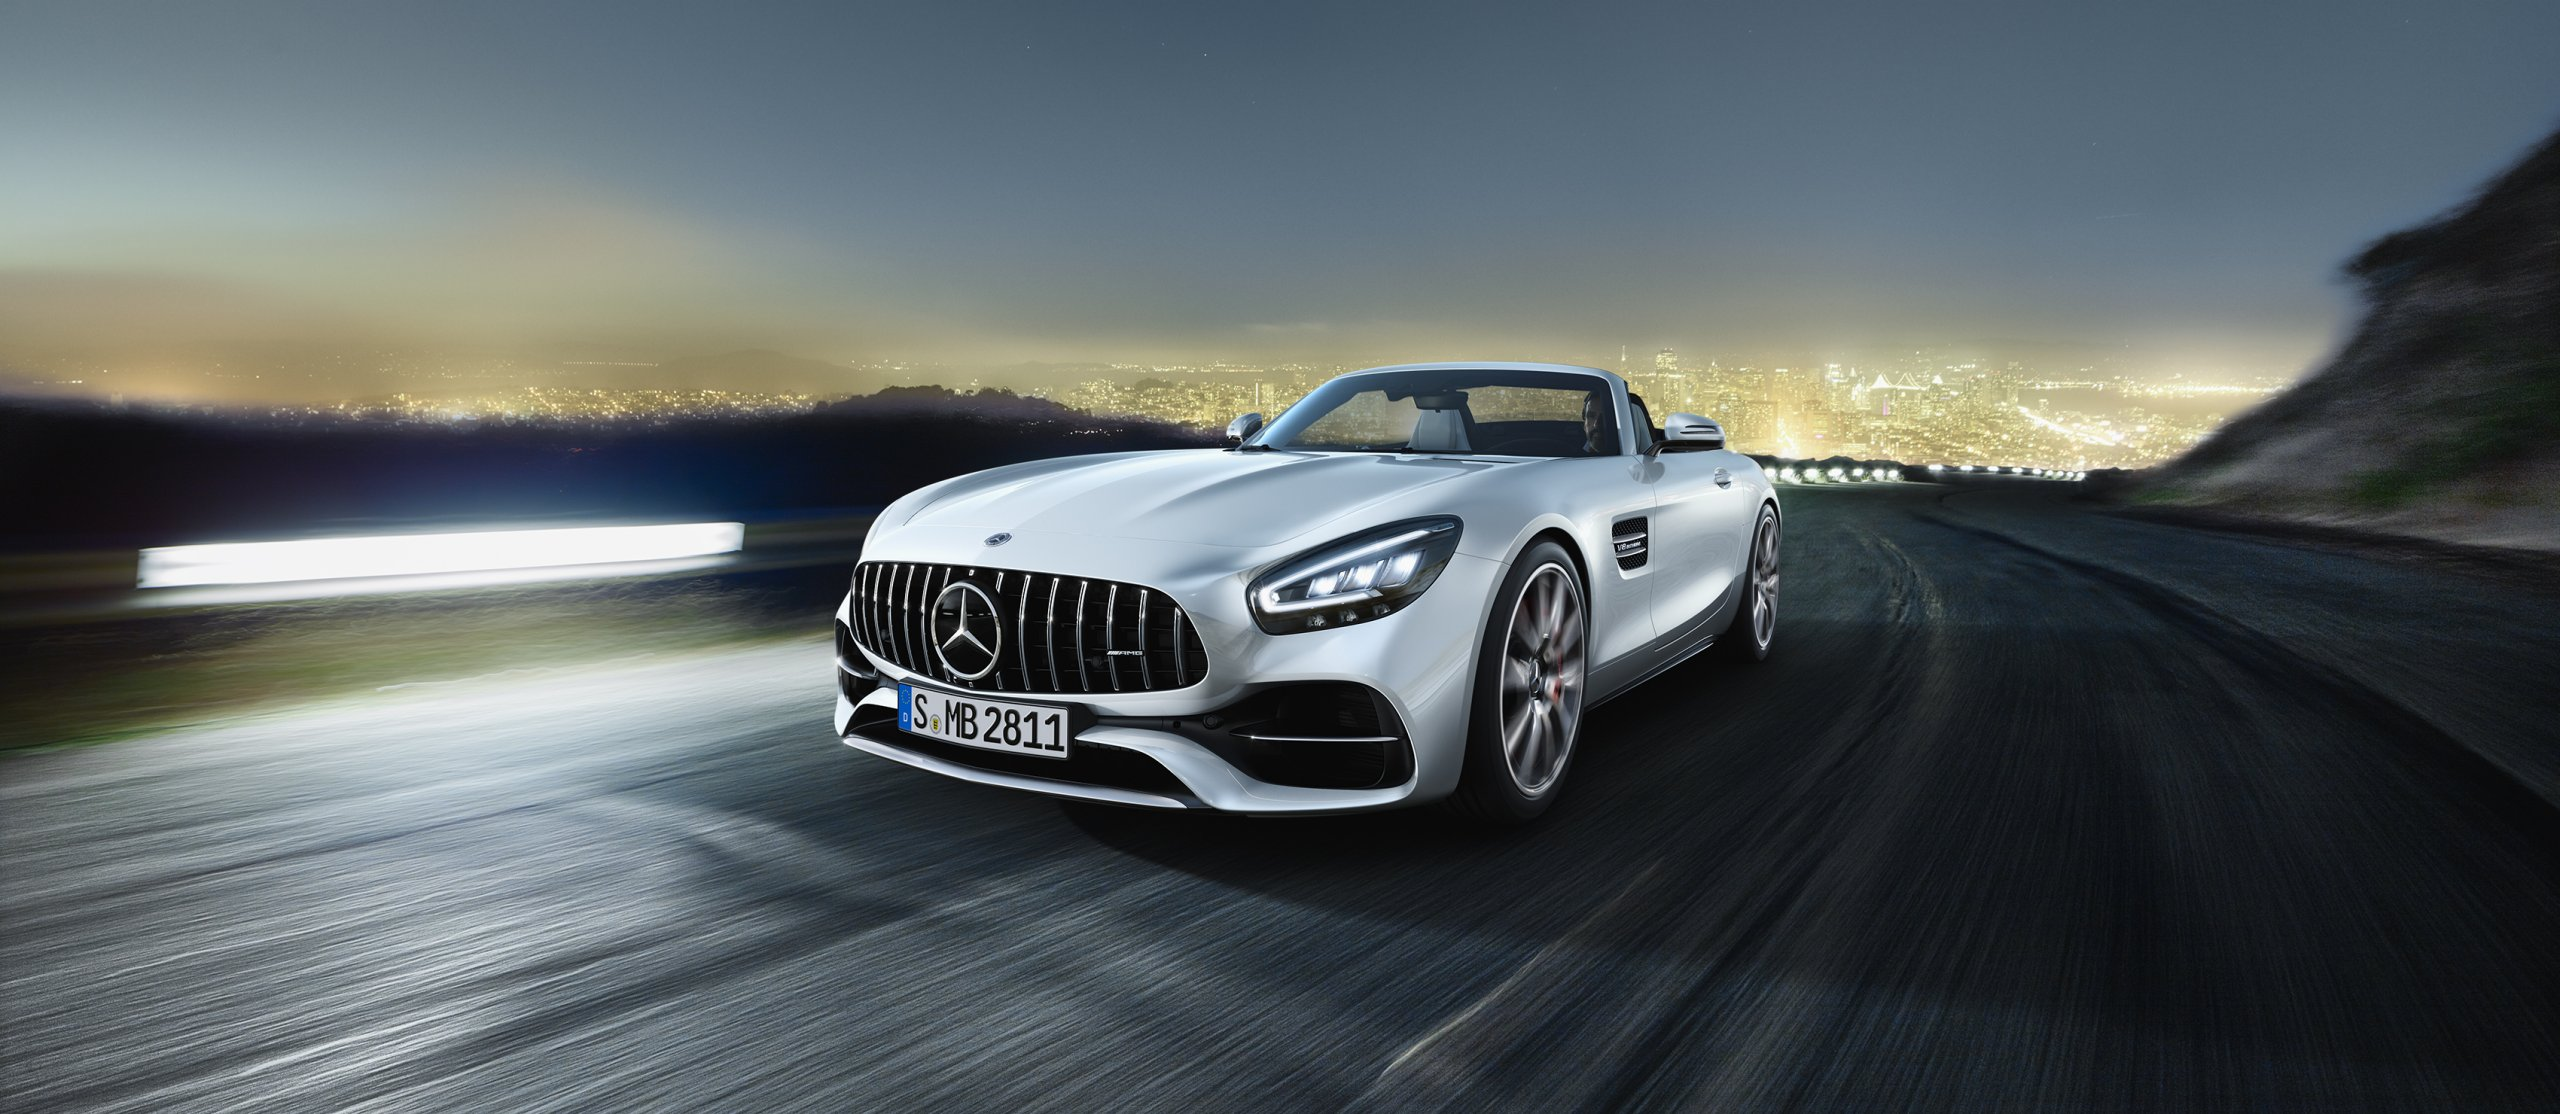 Mercedes Amg Gt Driving Performance For Sports Car Enthusiasts